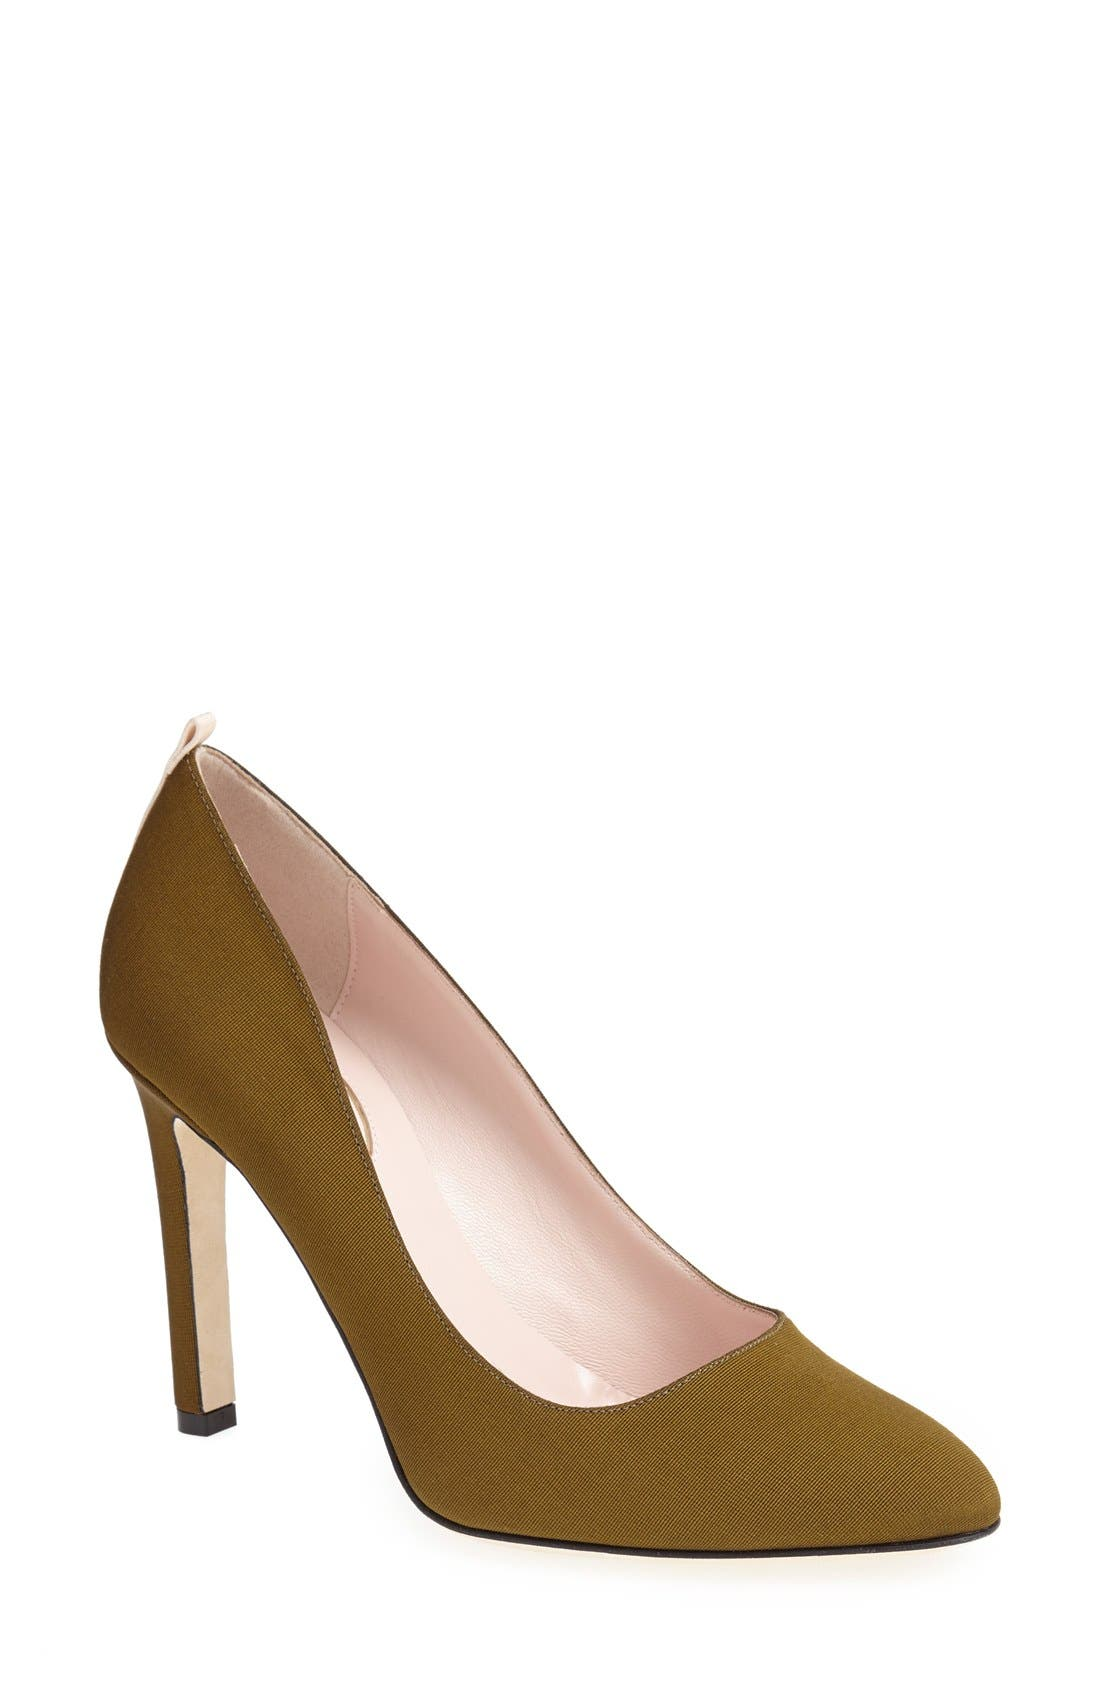 SJP 'Lady' Pump,                             Main thumbnail 1, color,                             300